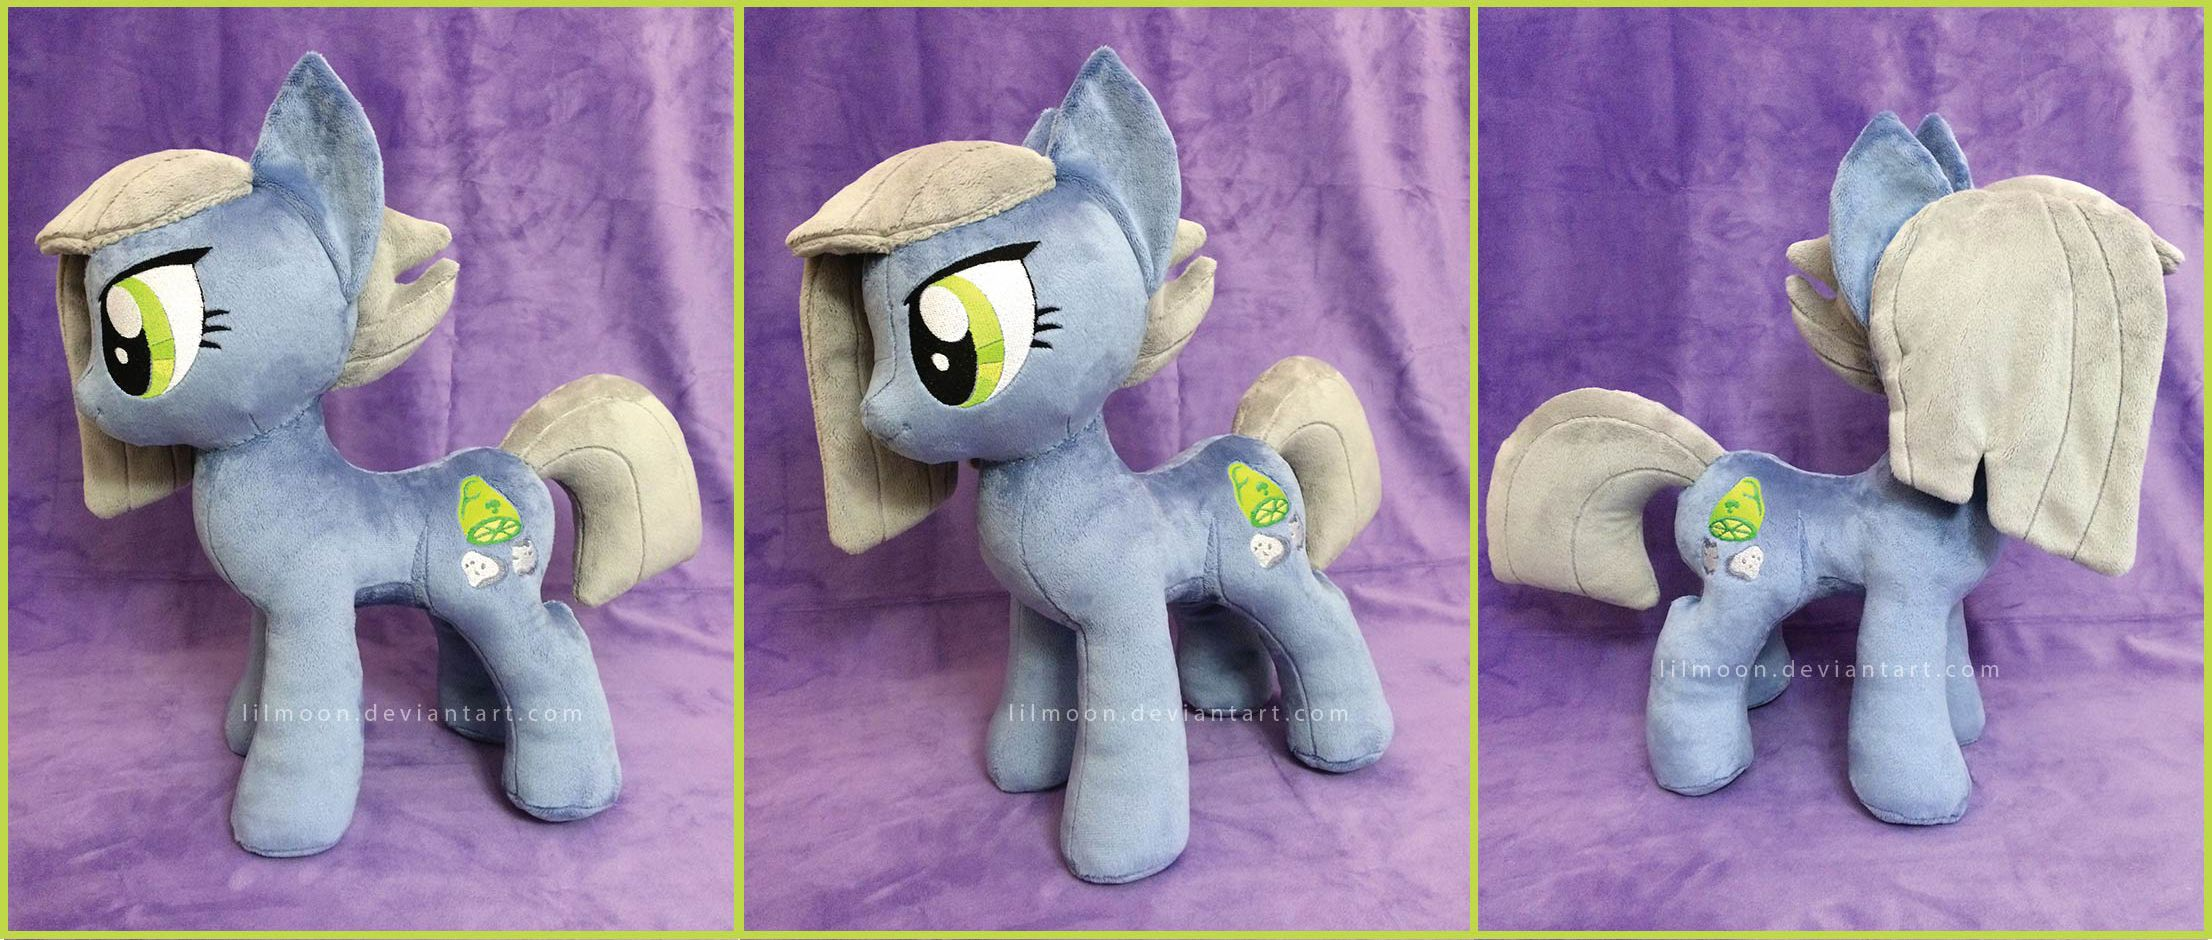 Limestone Pie by LiLMoon.deviantart.com on @DeviantArt